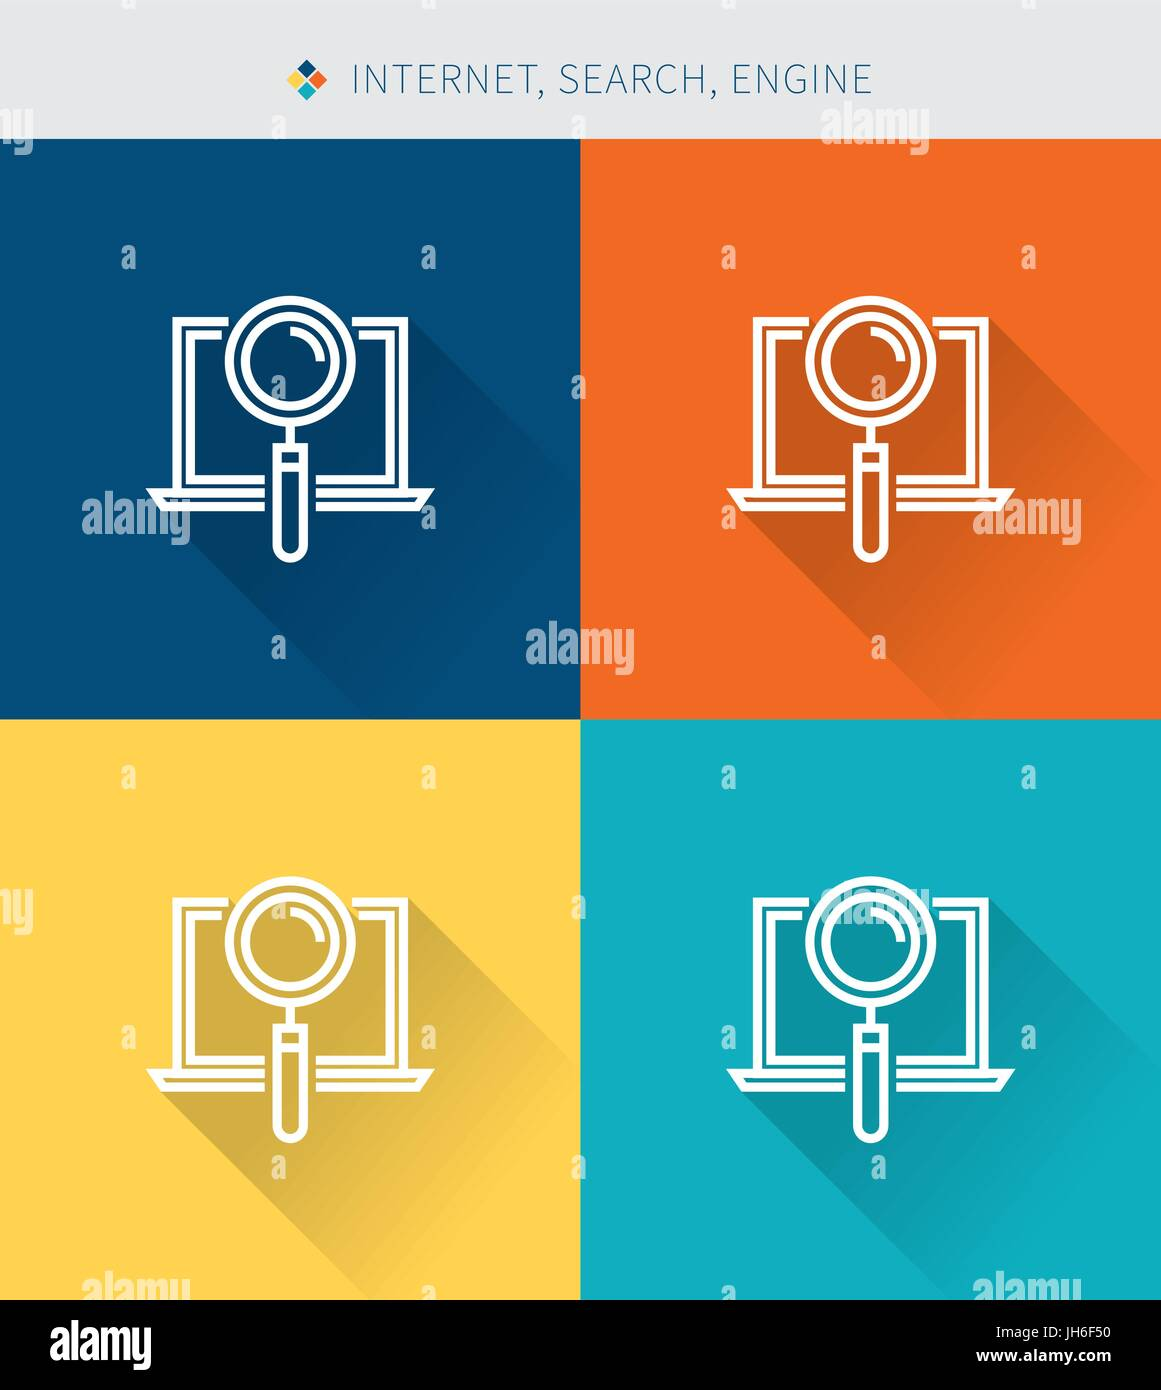 Thin thin line icons set of internet & search and engine ,modern simple style - Stock Image